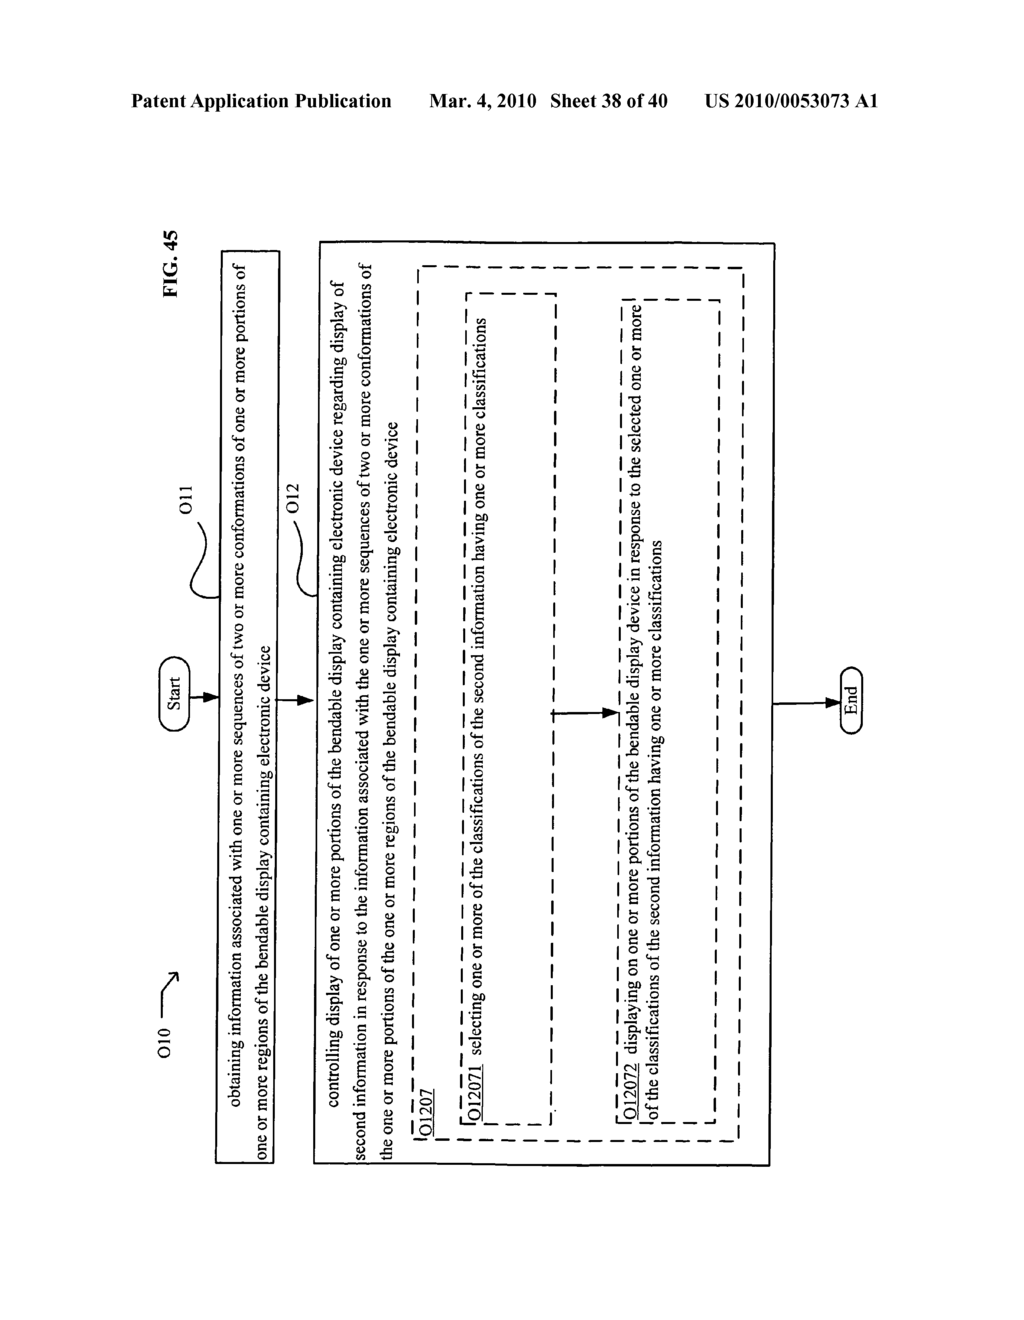 Display control based on bendable display containing electronic device conformation sequence status - diagram, schematic, and image 40